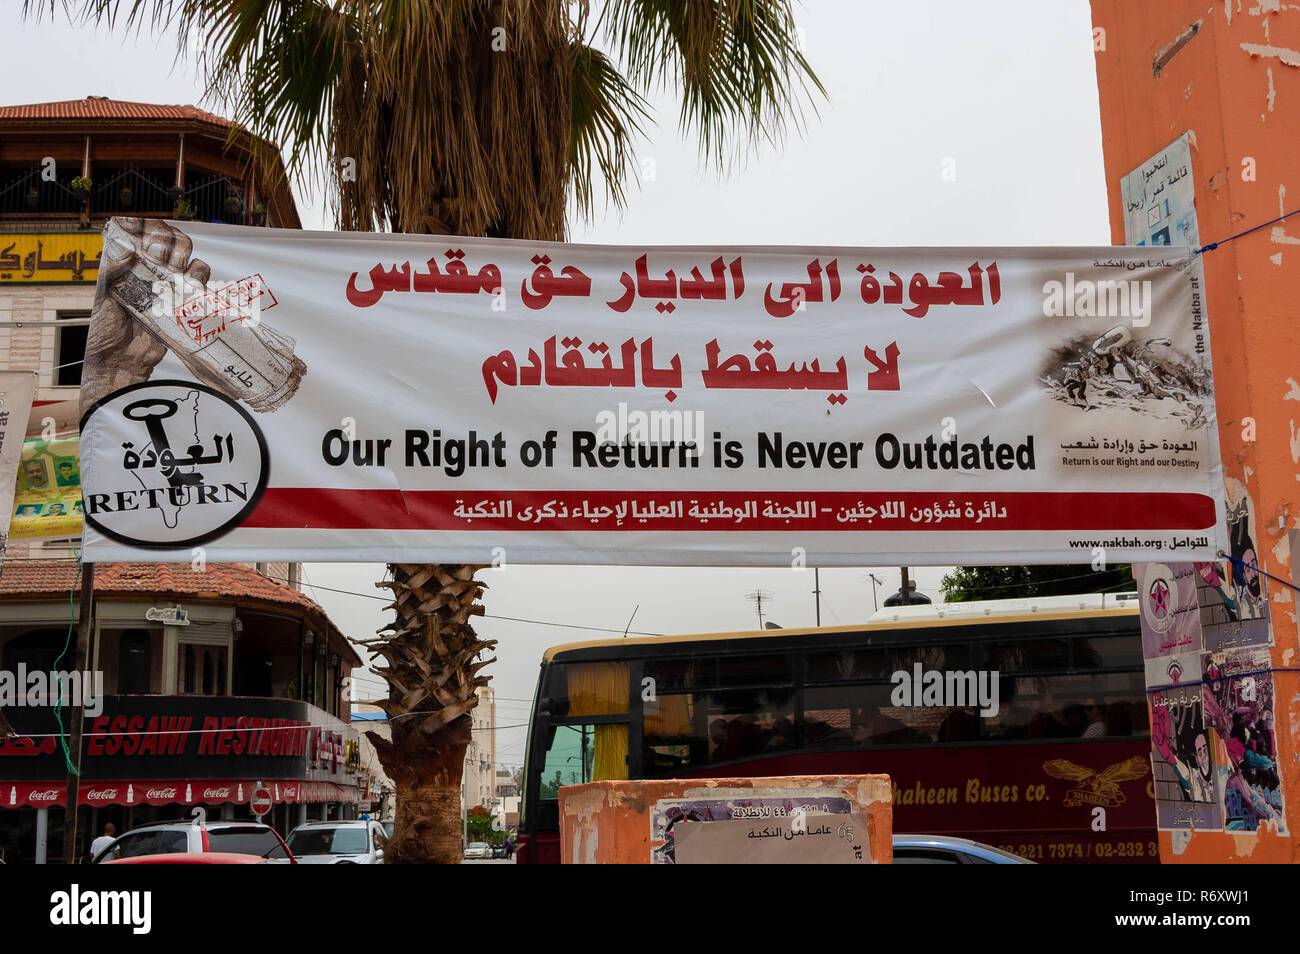 Our Right of Return is Never Outdated banner in Jericho. - Stock Image